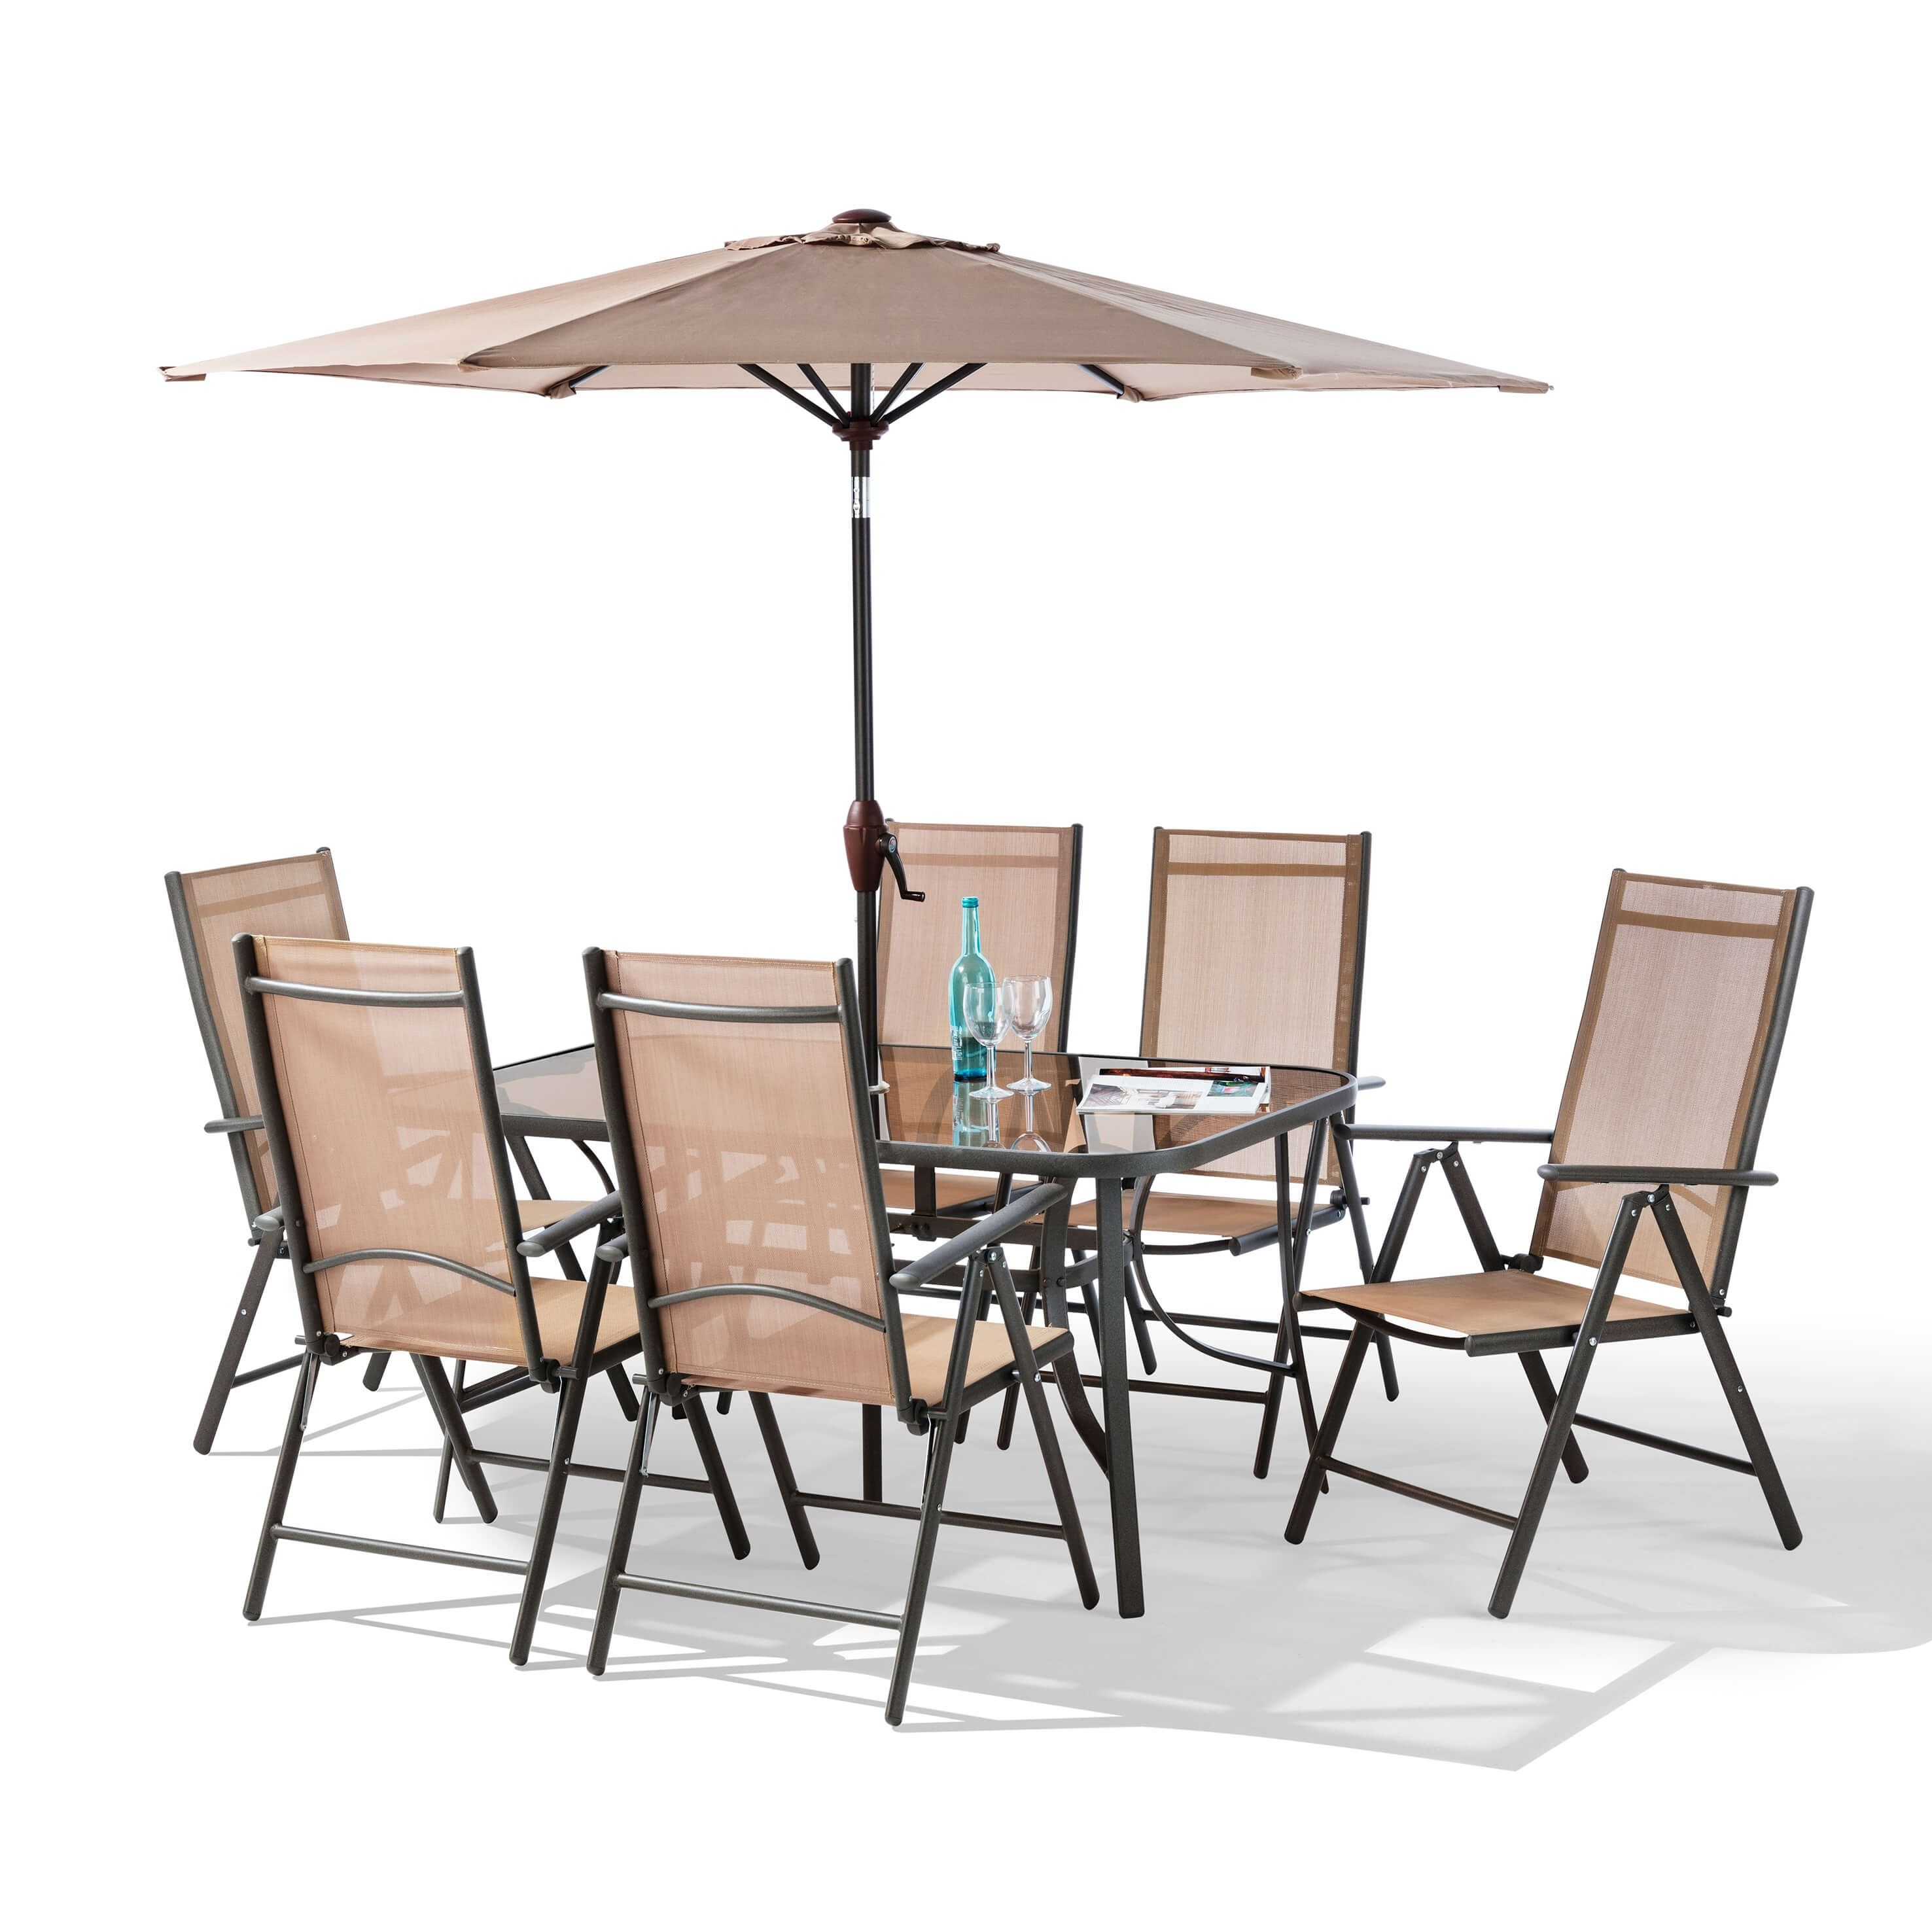 the 8 piece santorini garden patio set comes with 6 x 7 point